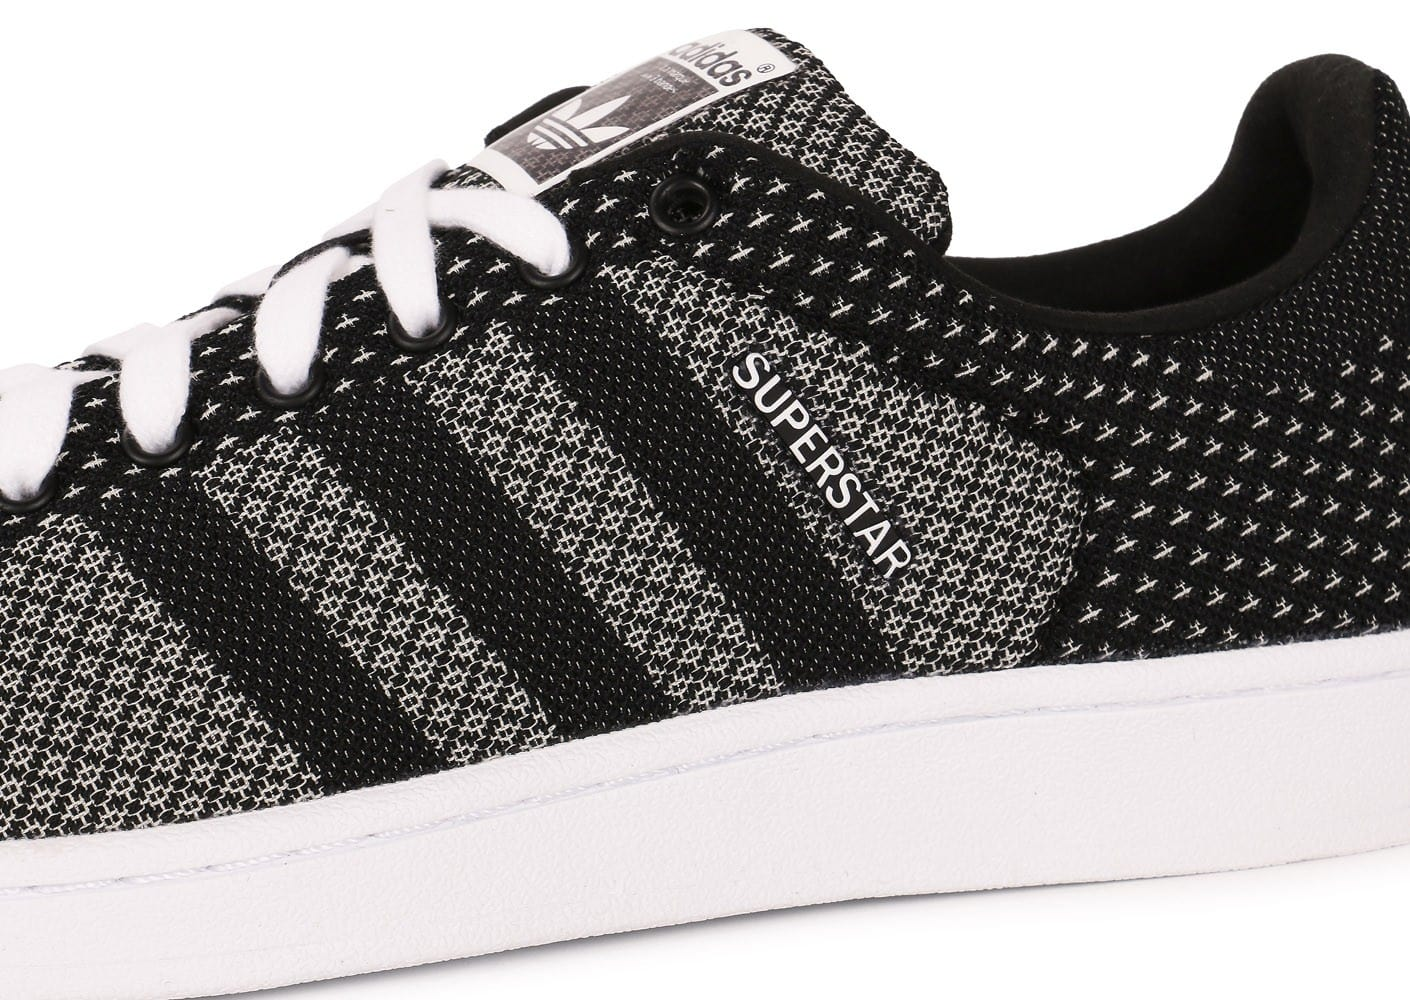 huge selection of c0b3d 512bc ... Chaussures adidas Superstar Weave noire vue dessus